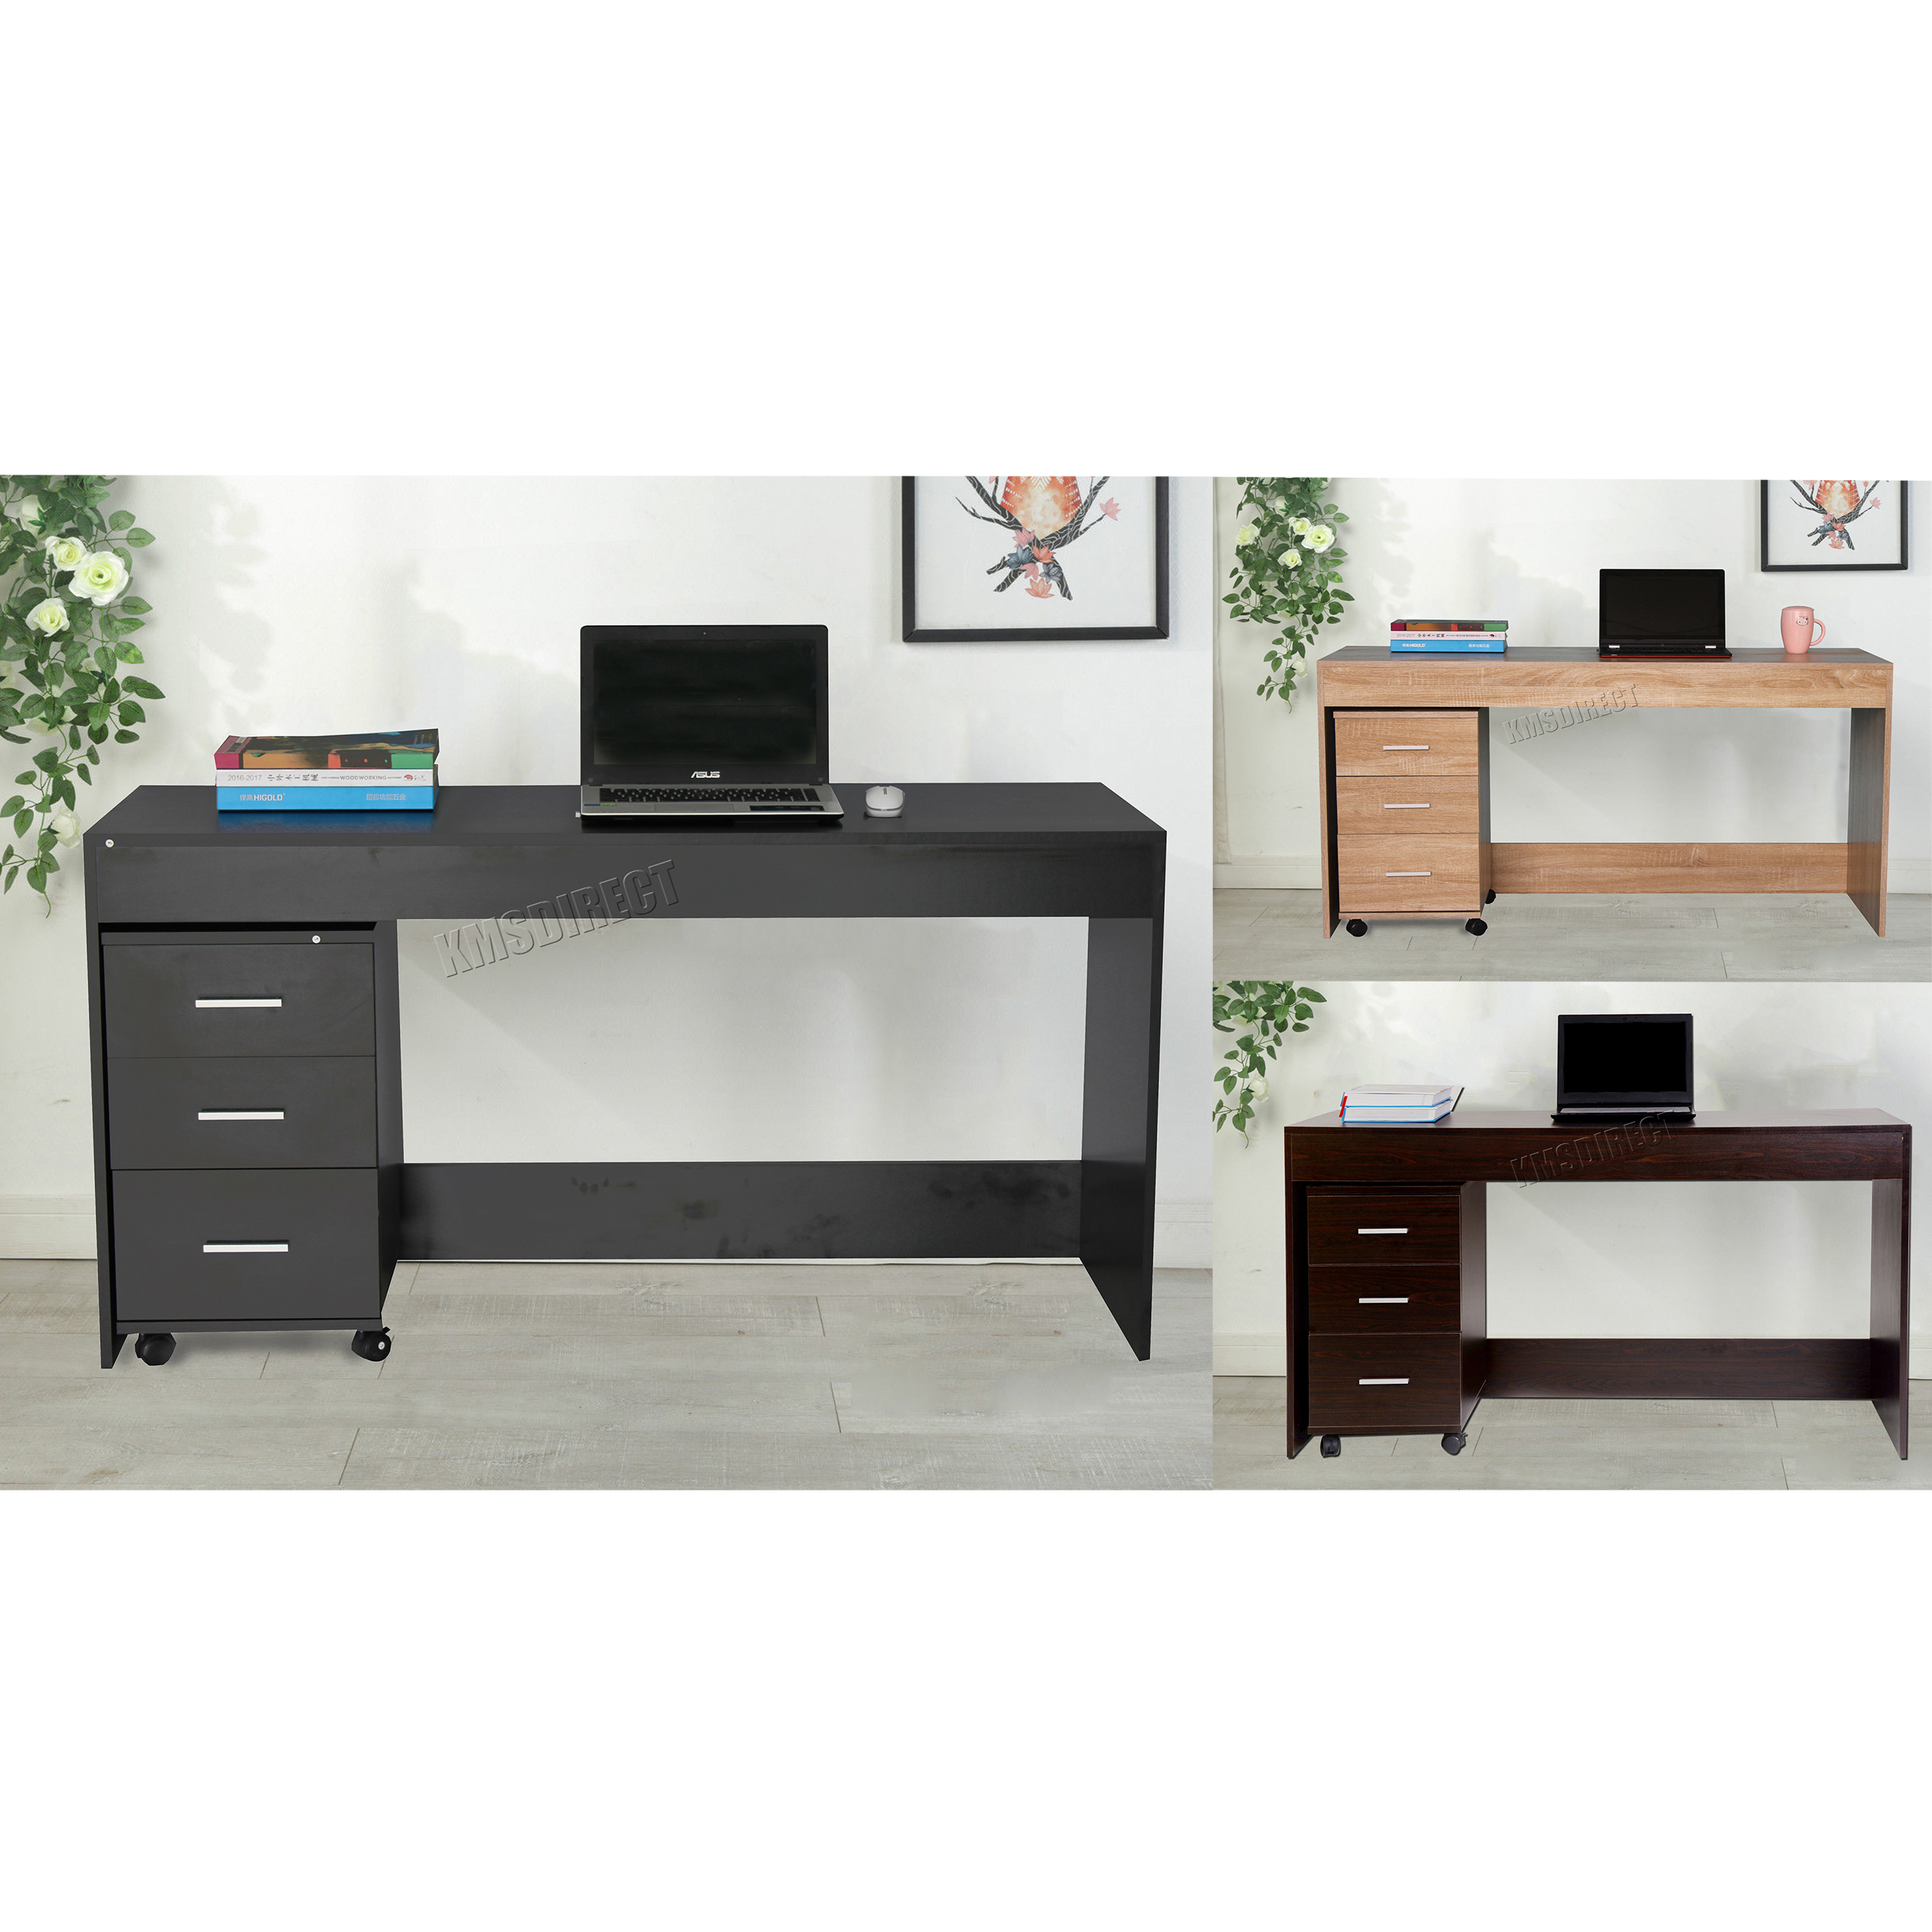 drawers cm drawer black out stop smooth bedside hemnes en pull ikea gb tables running with brown art table products